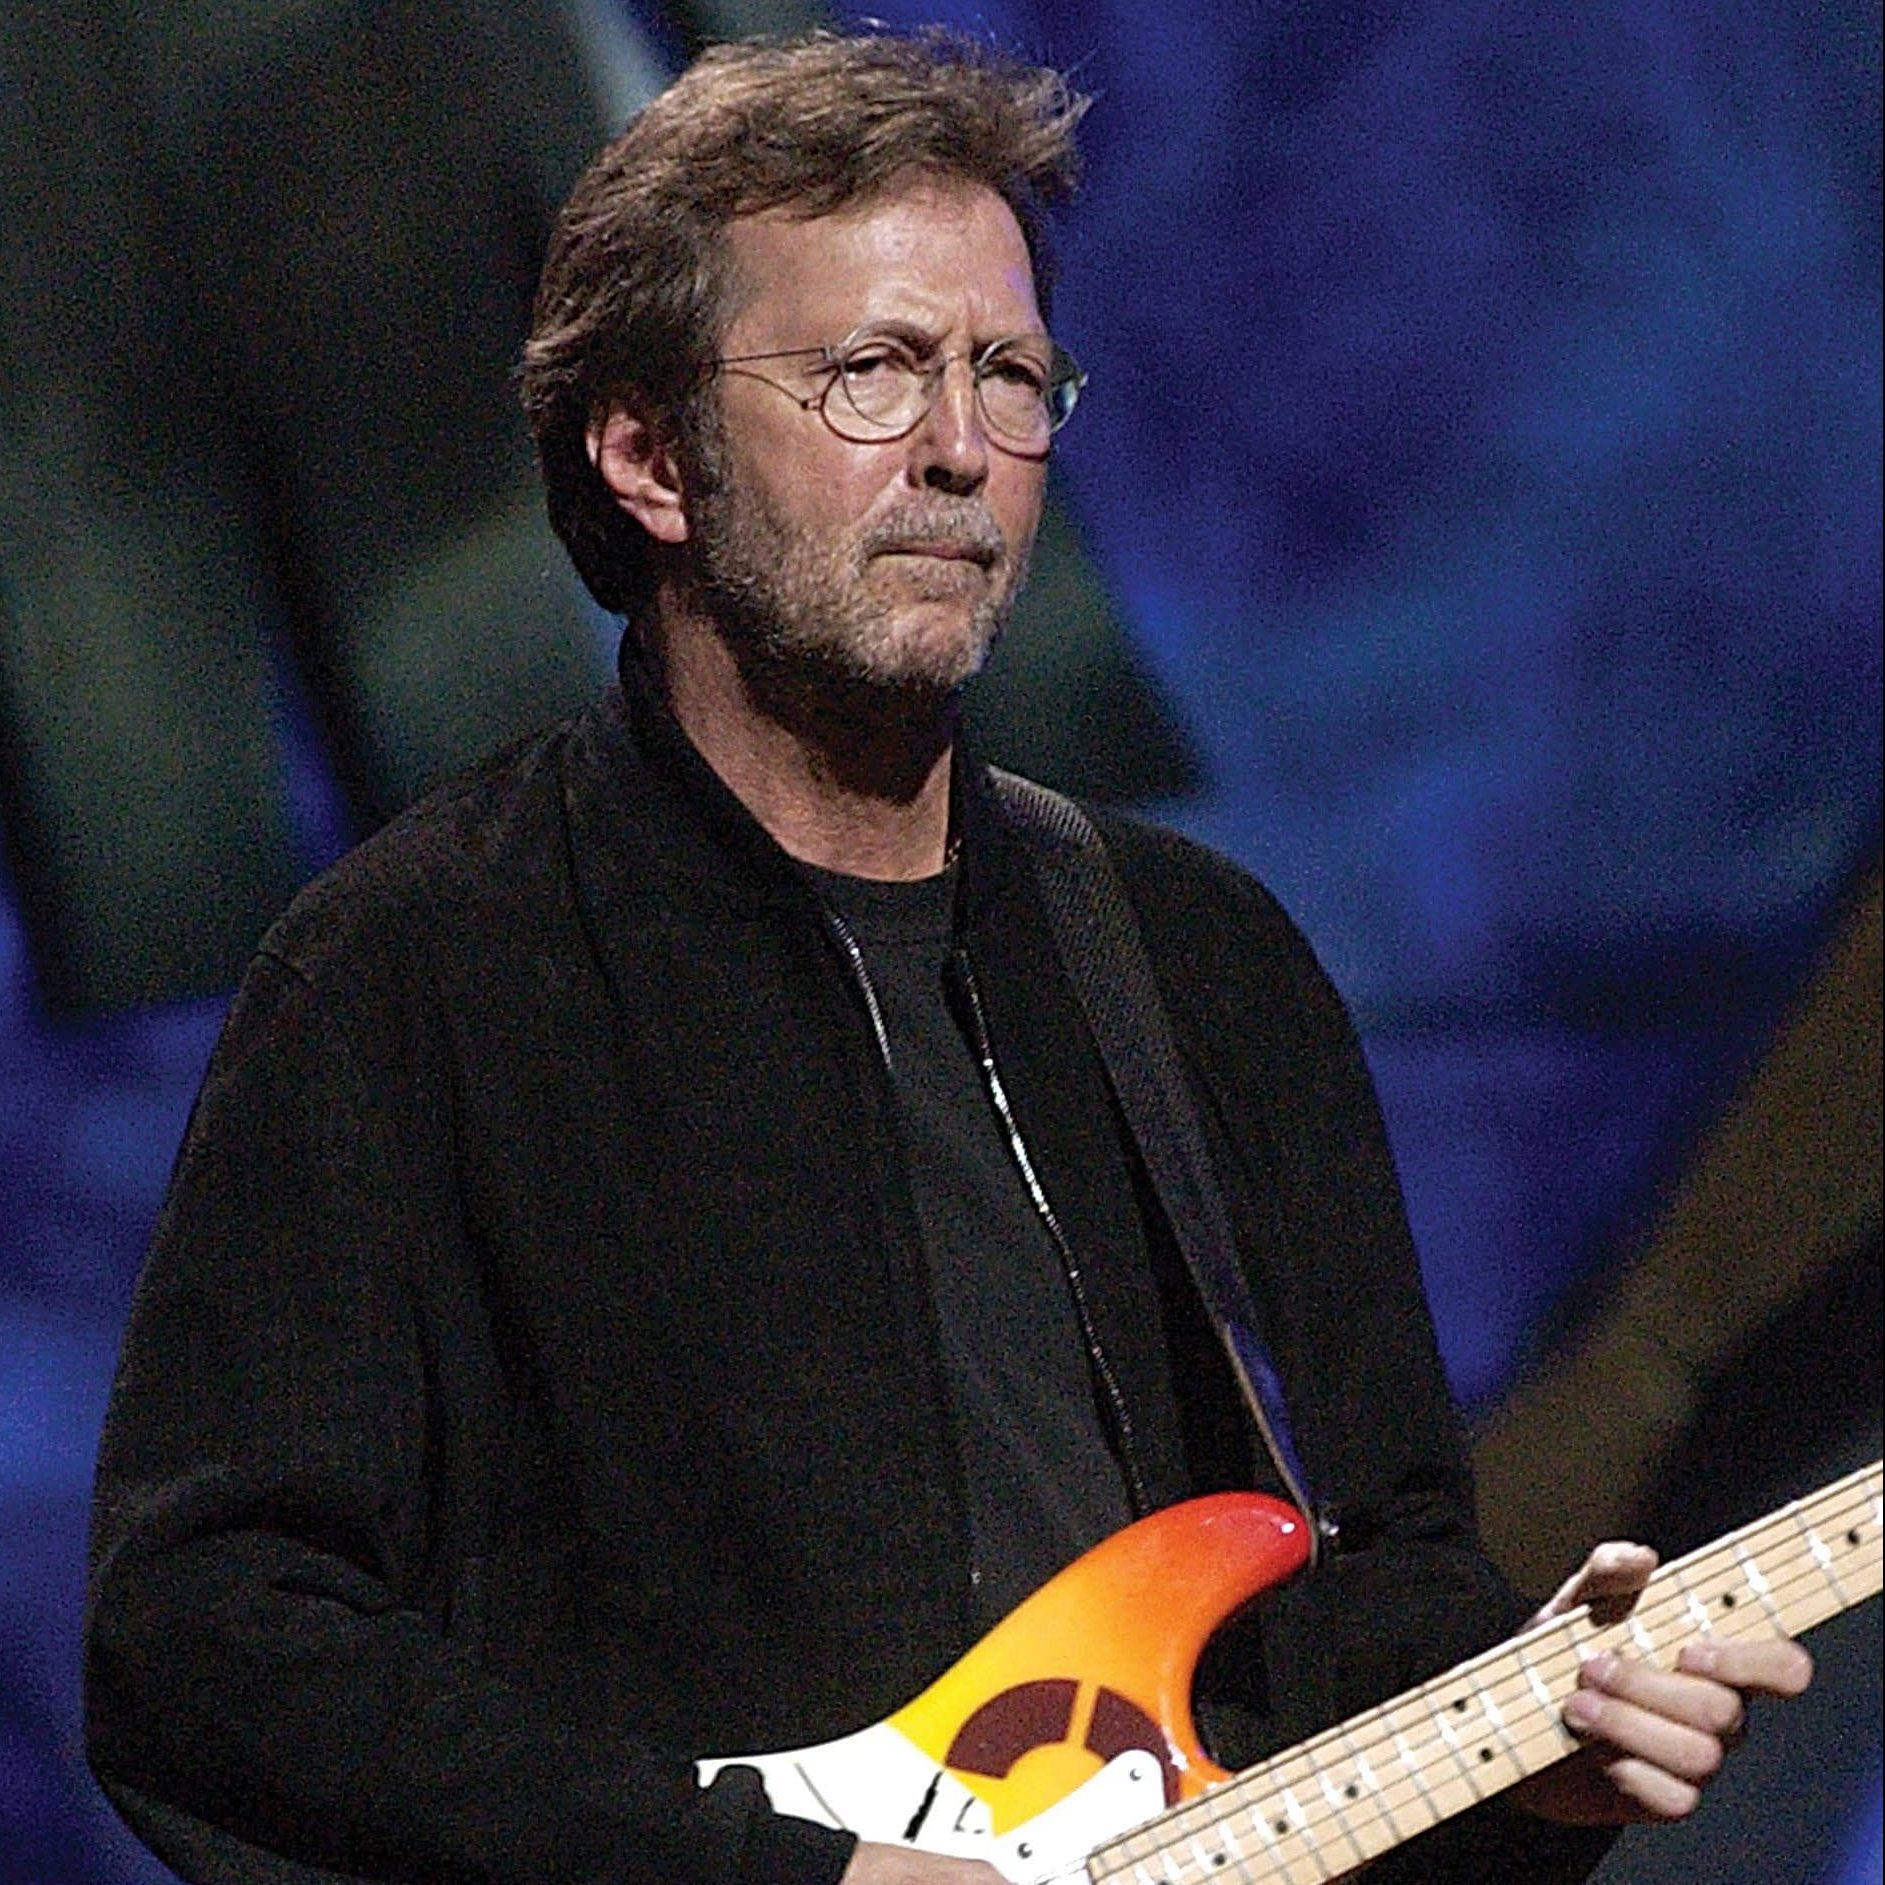 Eric Clapton 4 Style Studies e1602501745700 20 Things You Might Not Have Known About The Late, Great Eddie Van Halen